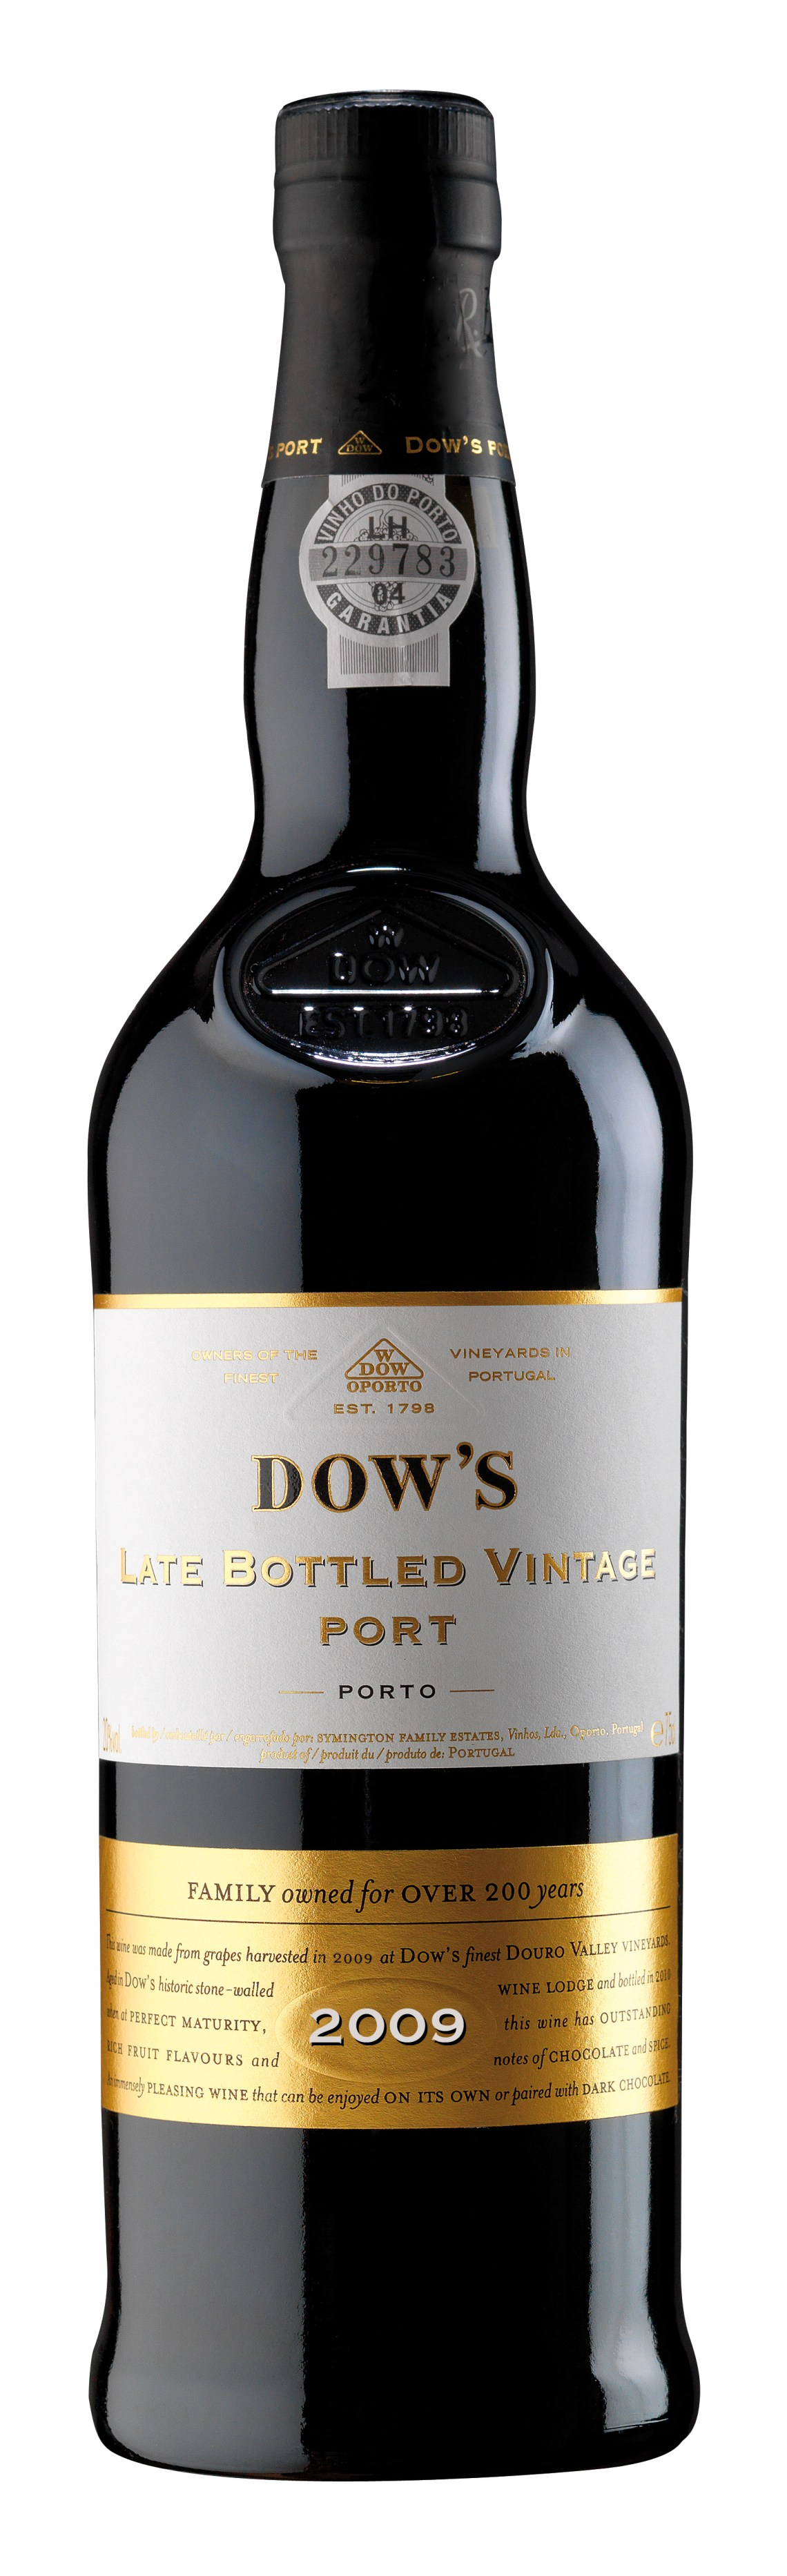 2009 Dow's Late Bottled Vintage Port